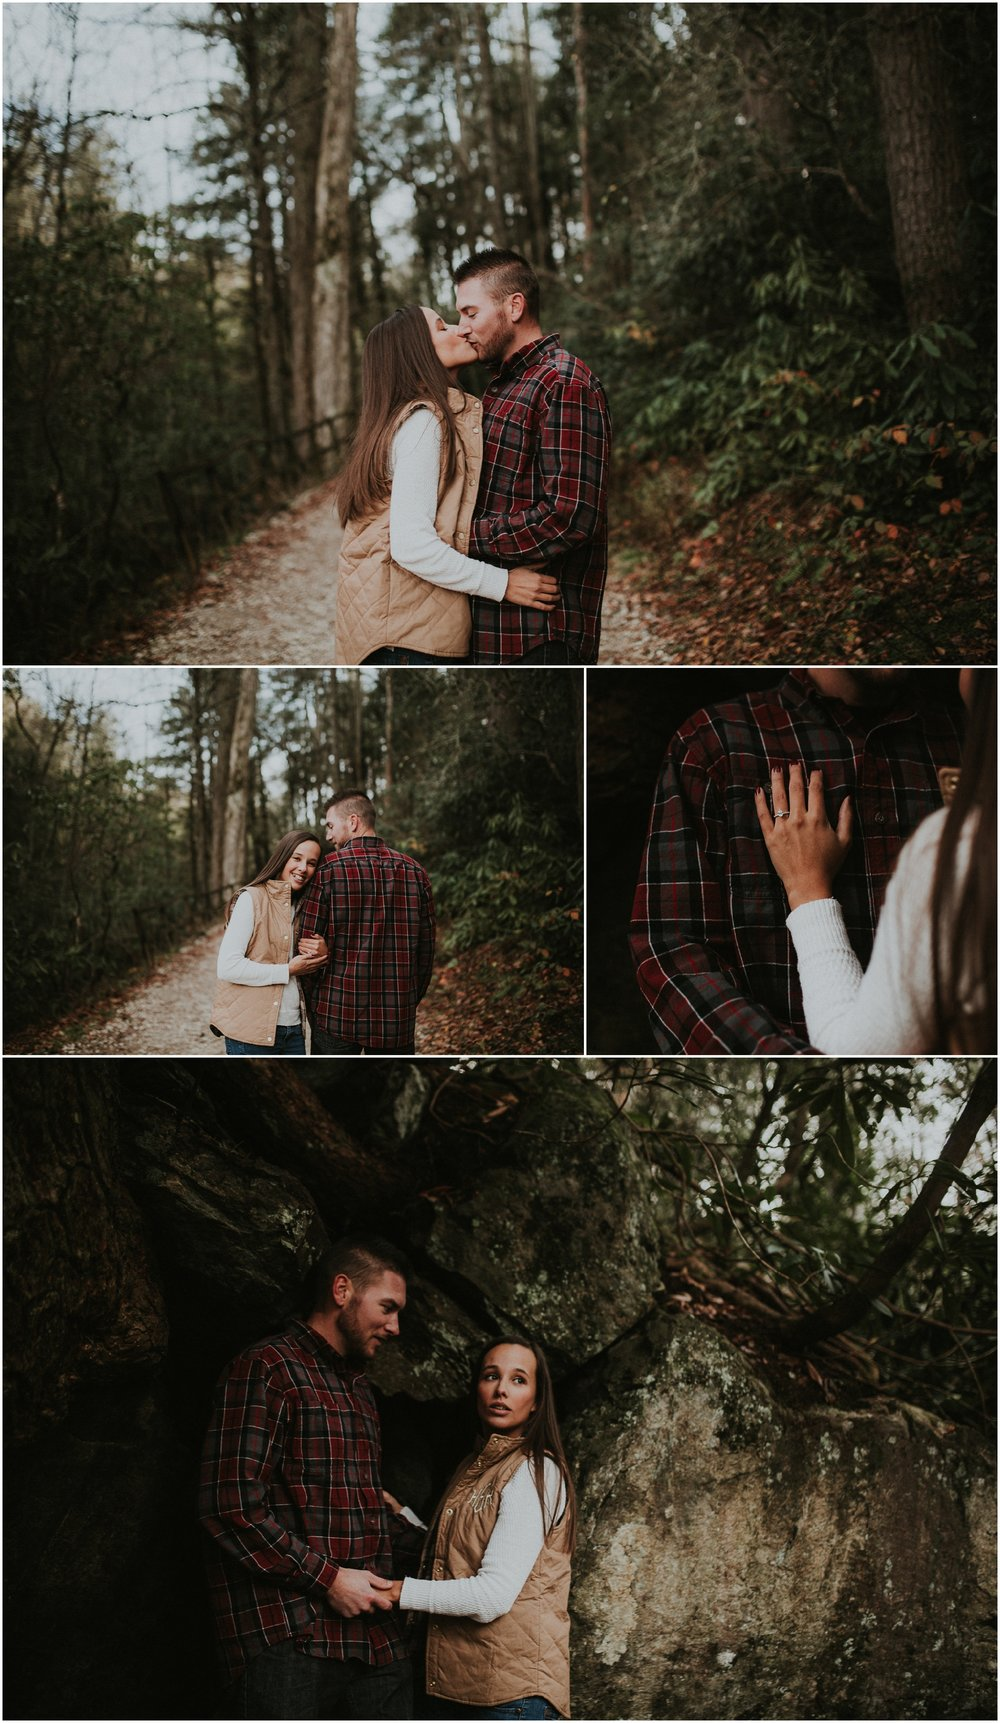 Linville-Falls-Engagement-avonne-Photography-23.jpg